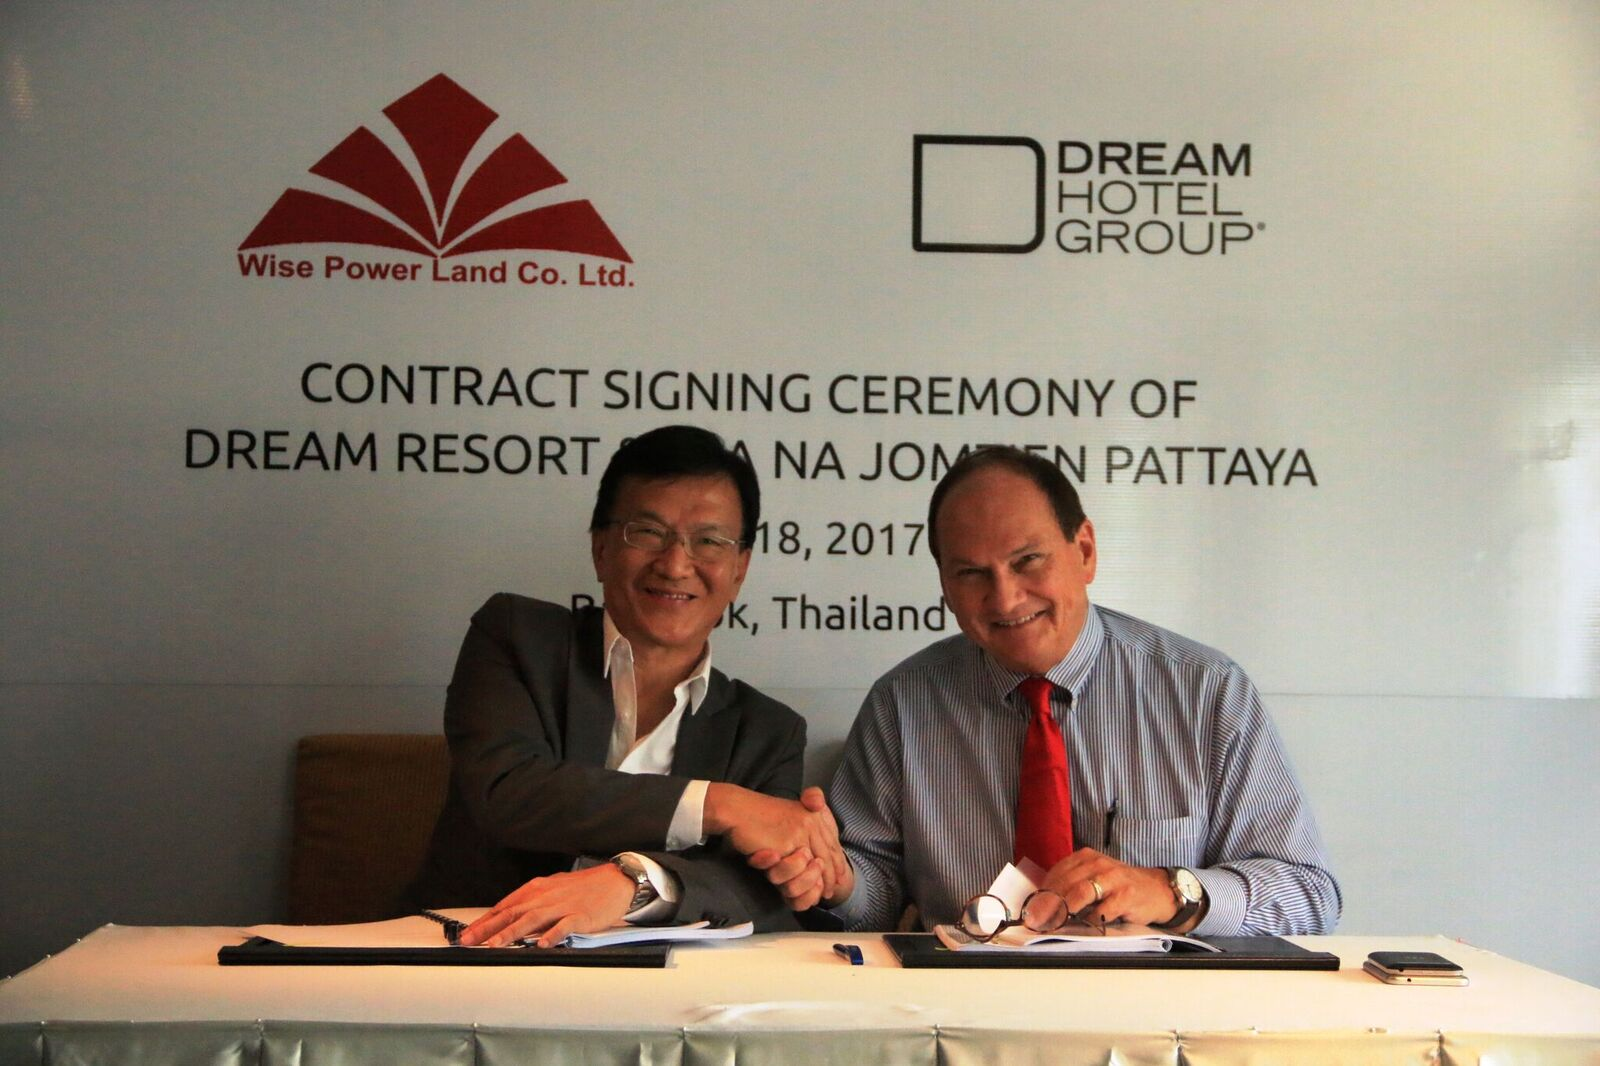 Dream Hotel Group Signs Third Location in Thailand